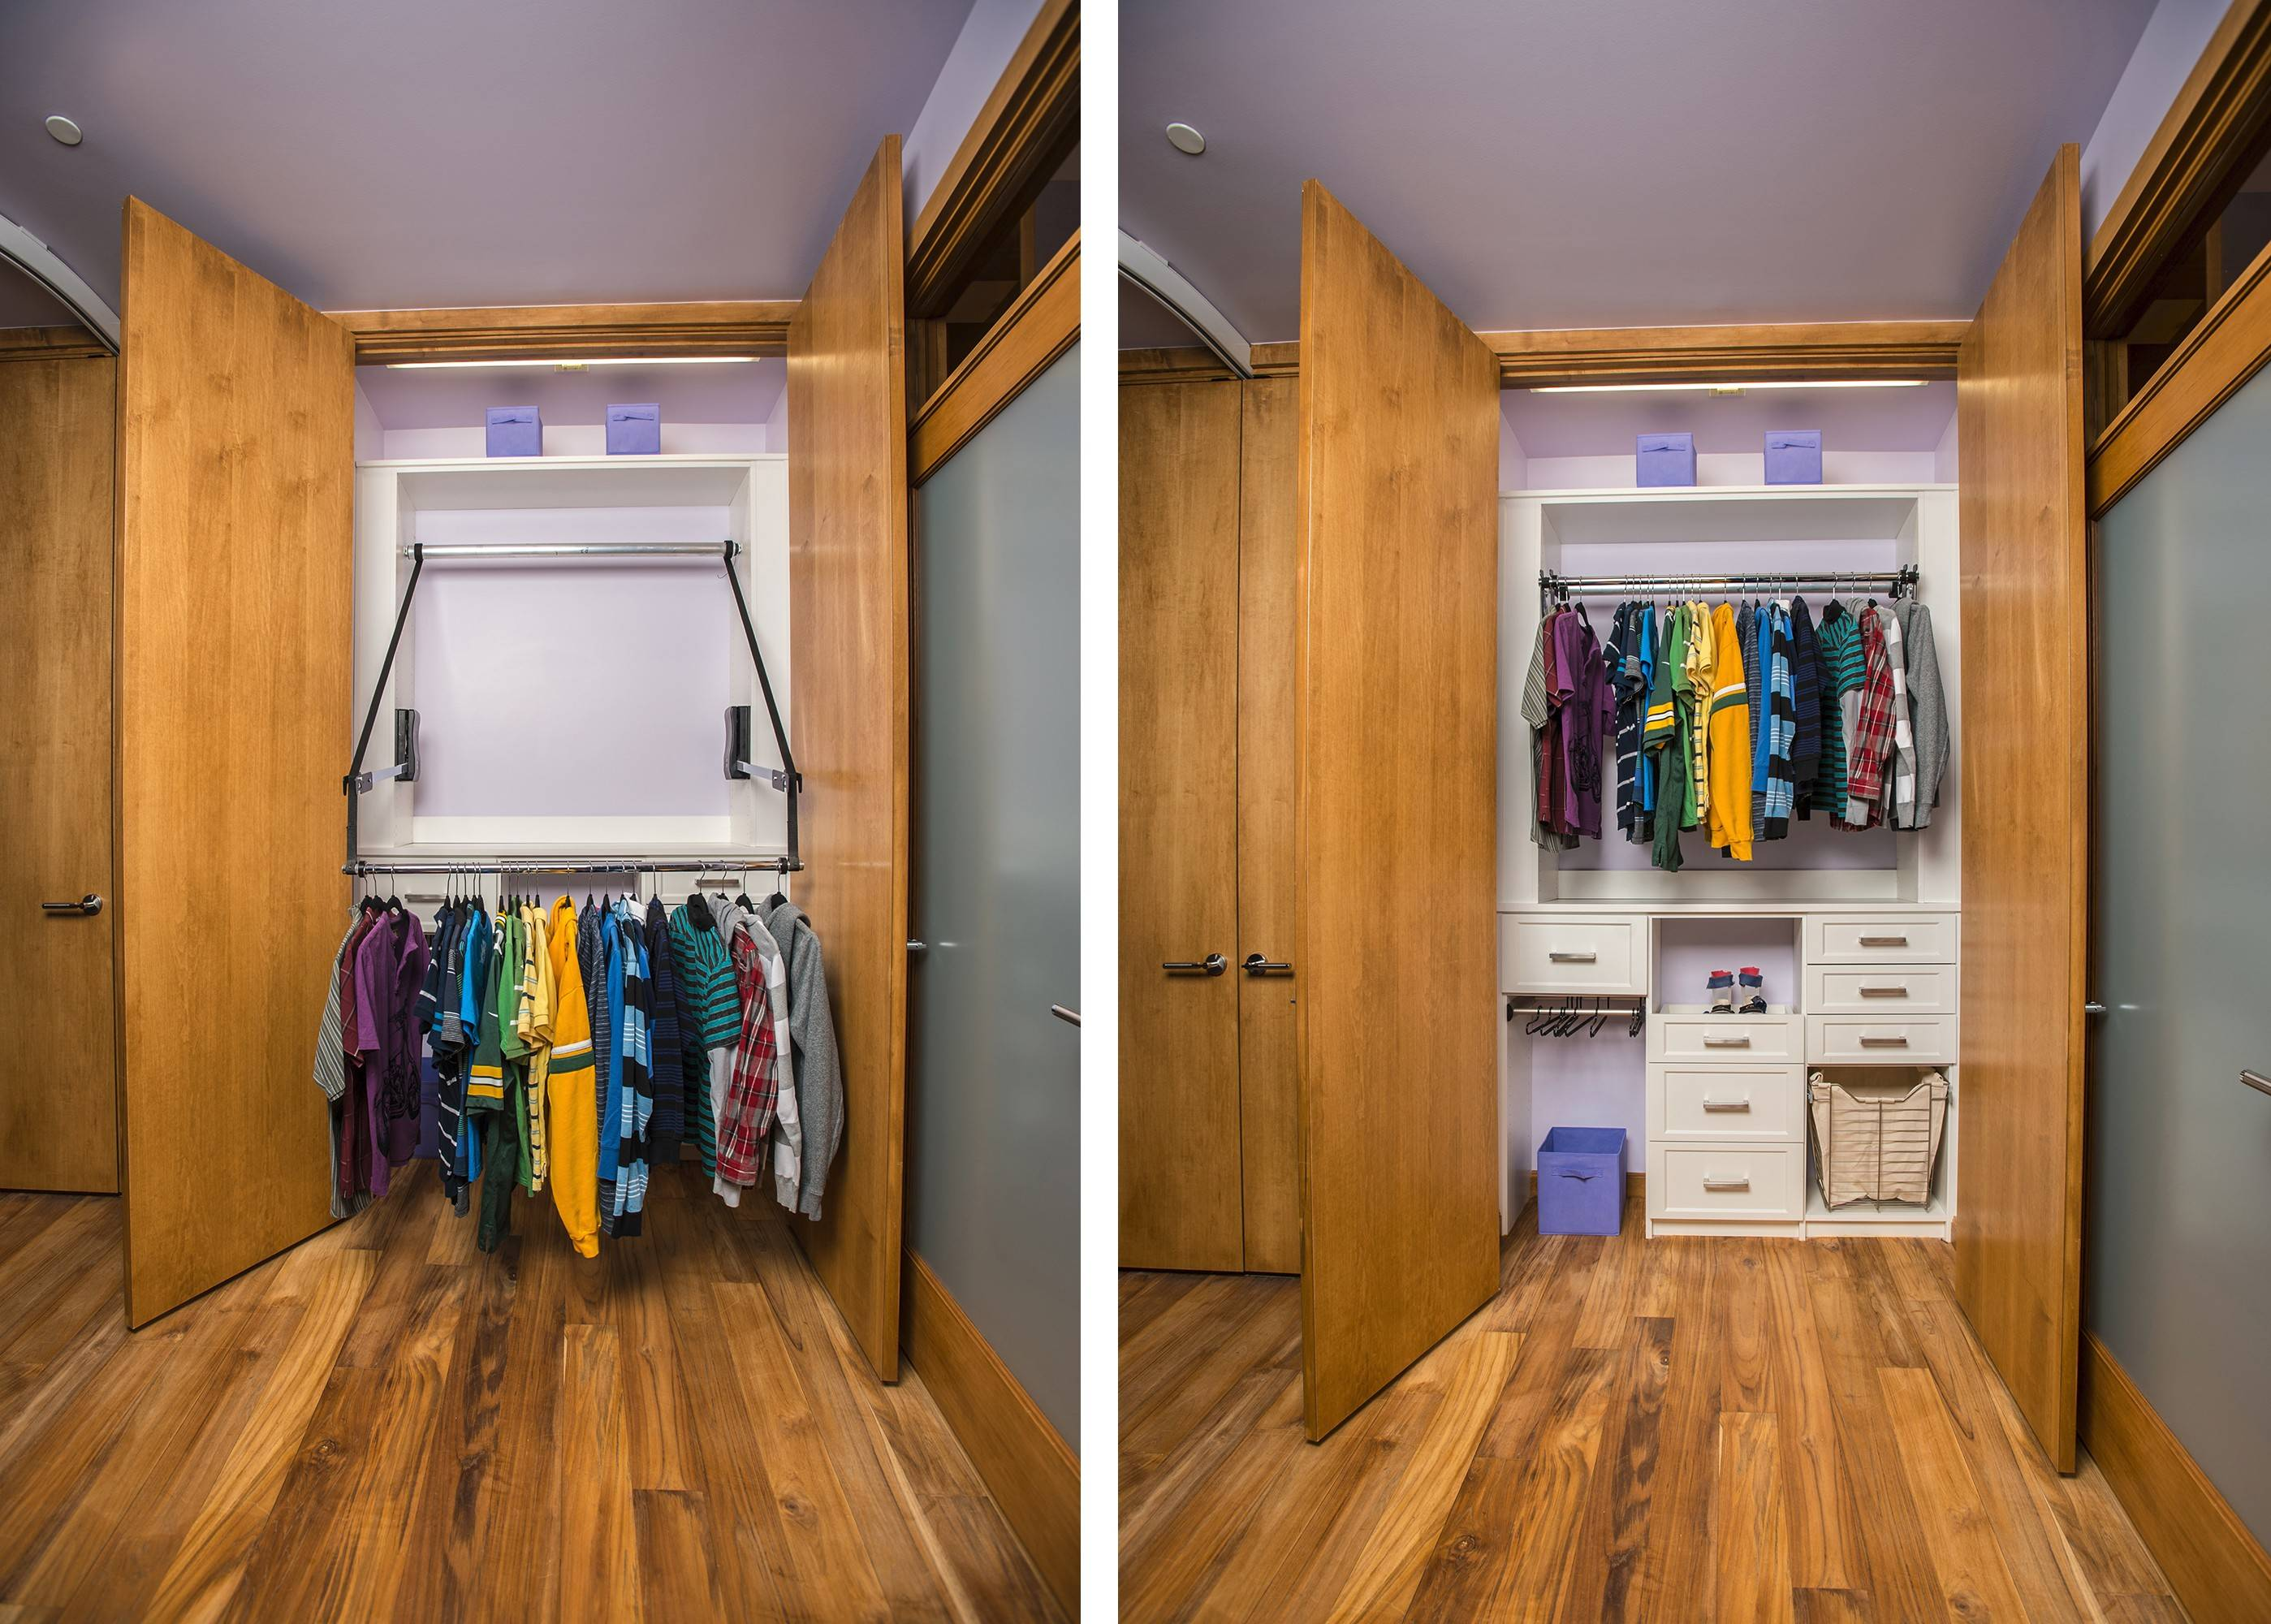 David's closet, by Todd Carter of Tailored Living, allows clothes to be lowered to within reach of a seated individual.